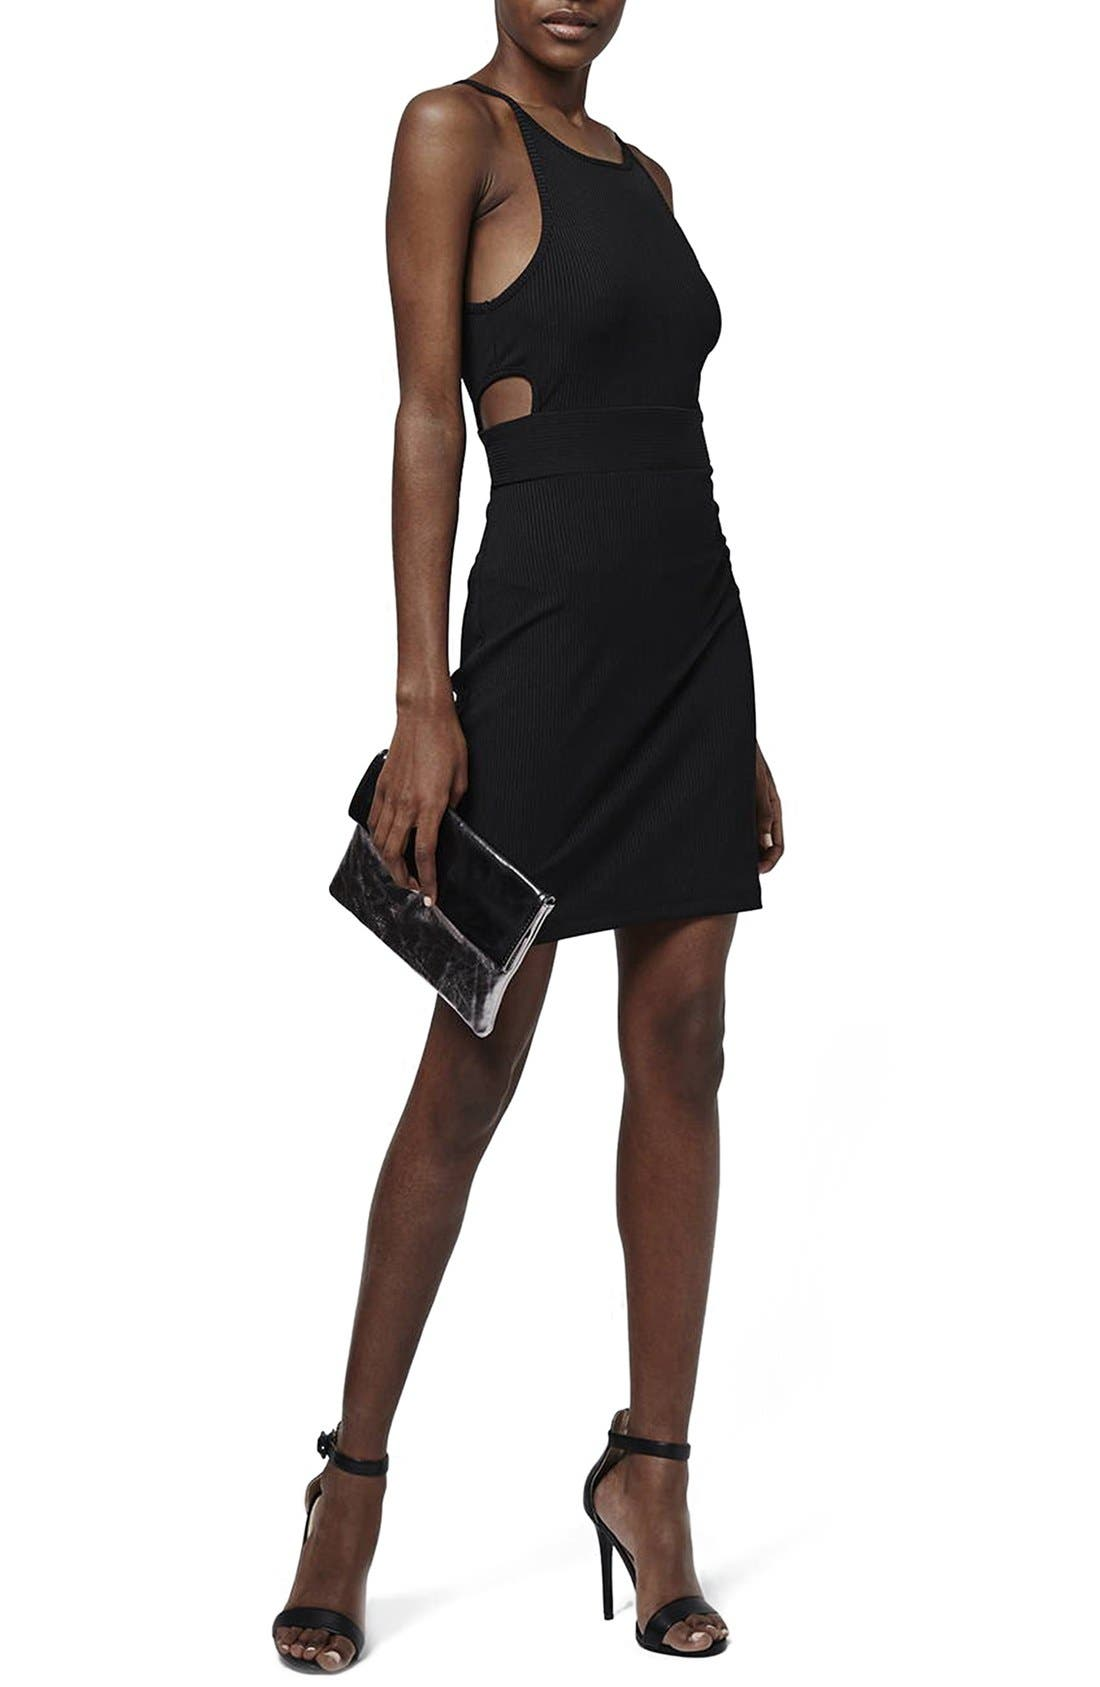 Alternate Image 1 Selected - Topshop 'Sporty' Ribbed Knit Body-Con Dress (Petite)